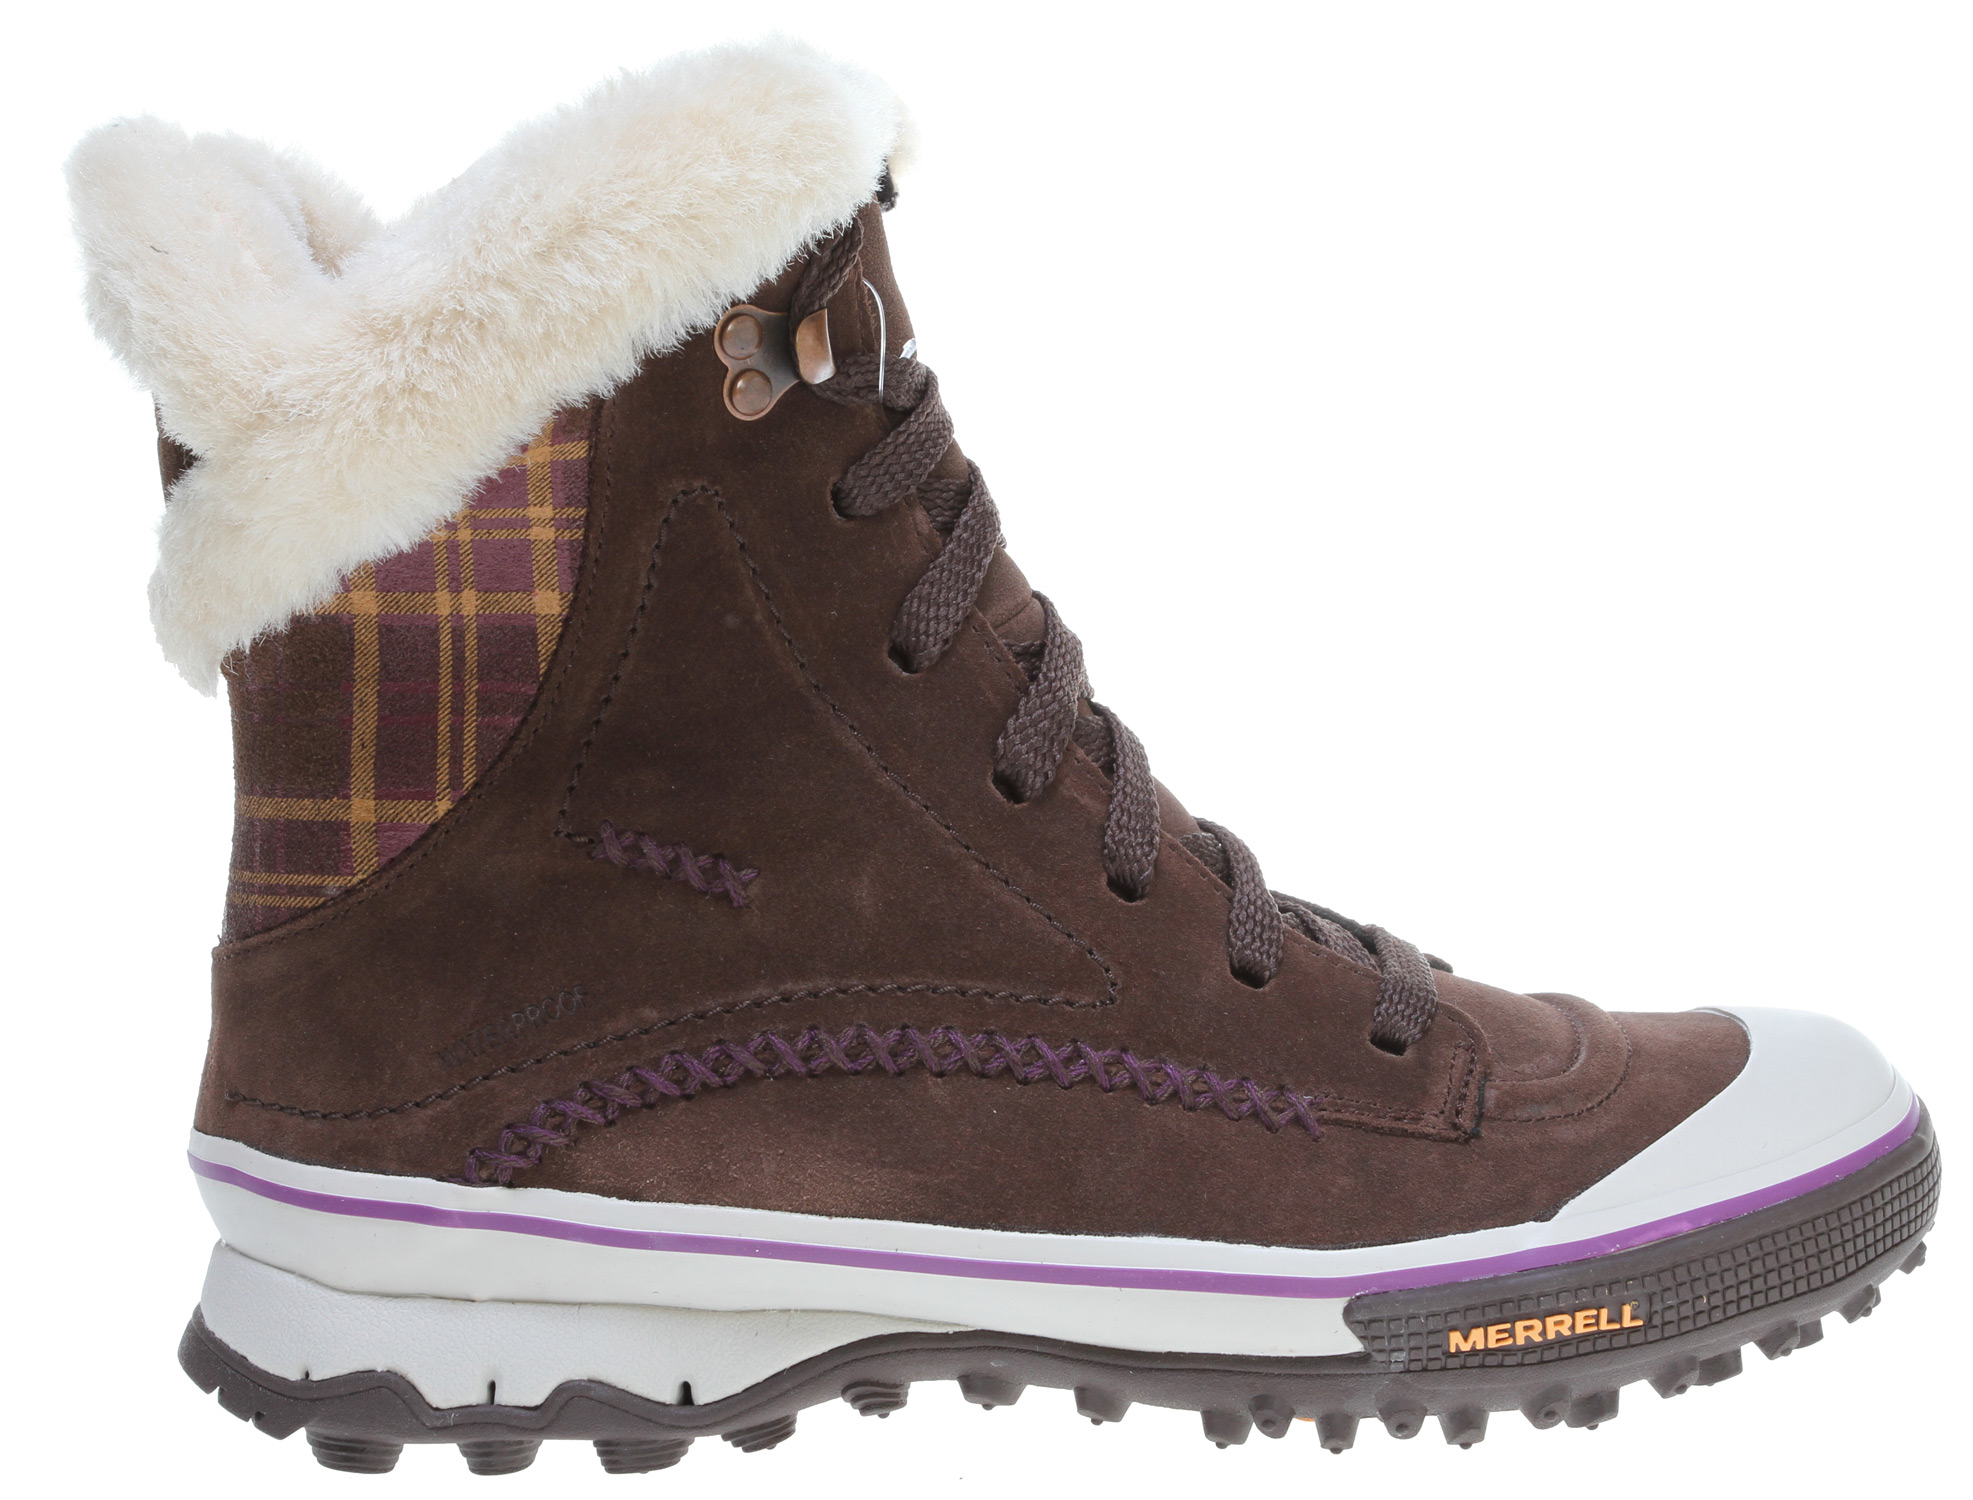 "With just enough plaid to make you feel ""rad,"" these Merrell Weather-Tight winter lace-up boots are seriously fun stormy weather protection. Waterproof suede uppers insulated with lightweight, low-bulk synthetic Merrell Opti-Warm won't weigh you down. The extra-deep 5mm sole lugs provide enough traction for skipping if the mood (or gusts) move you.Key Features of the Merrell Pixie Lace Waterproof Boots: Cement construction provides lightweight durability Waterproof suede and fabric upper Merrell Weather-Tight construction provides a water resistant barrier 200 grams of Merrell Opti-Warm lightweight, low-bulk, synthetic insulation keeps you warm EVA removable footbed Molded nylon arch shank Merrell Pixie Sole/Sticky Rubber 5 mm sole lug depth - $86.95"